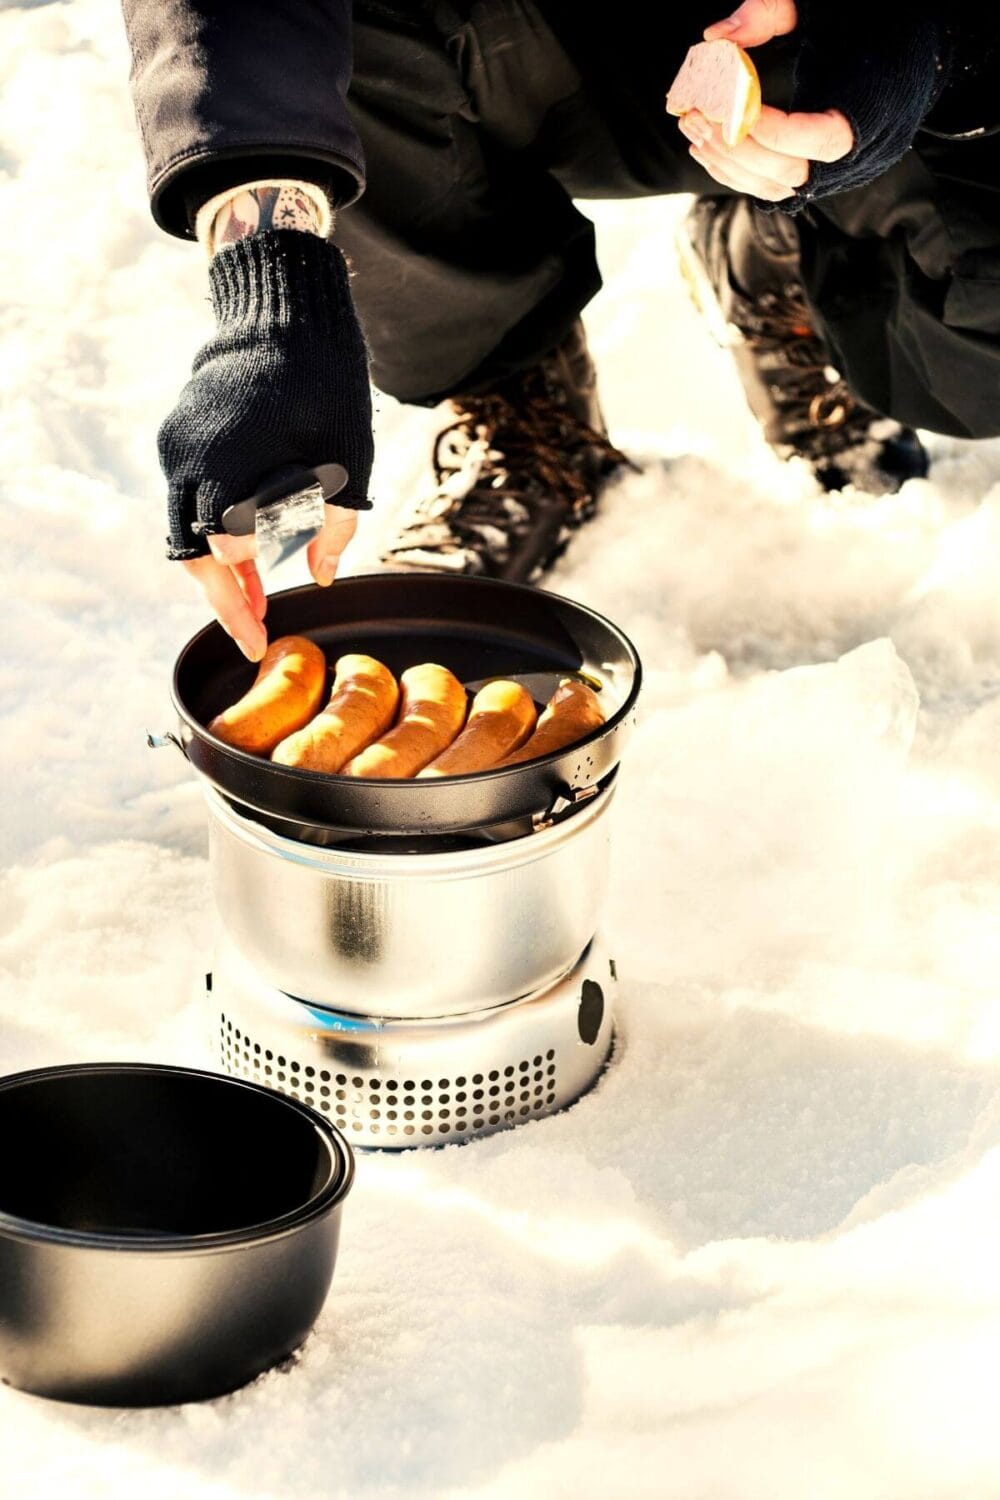 cooking over camp oven in snow